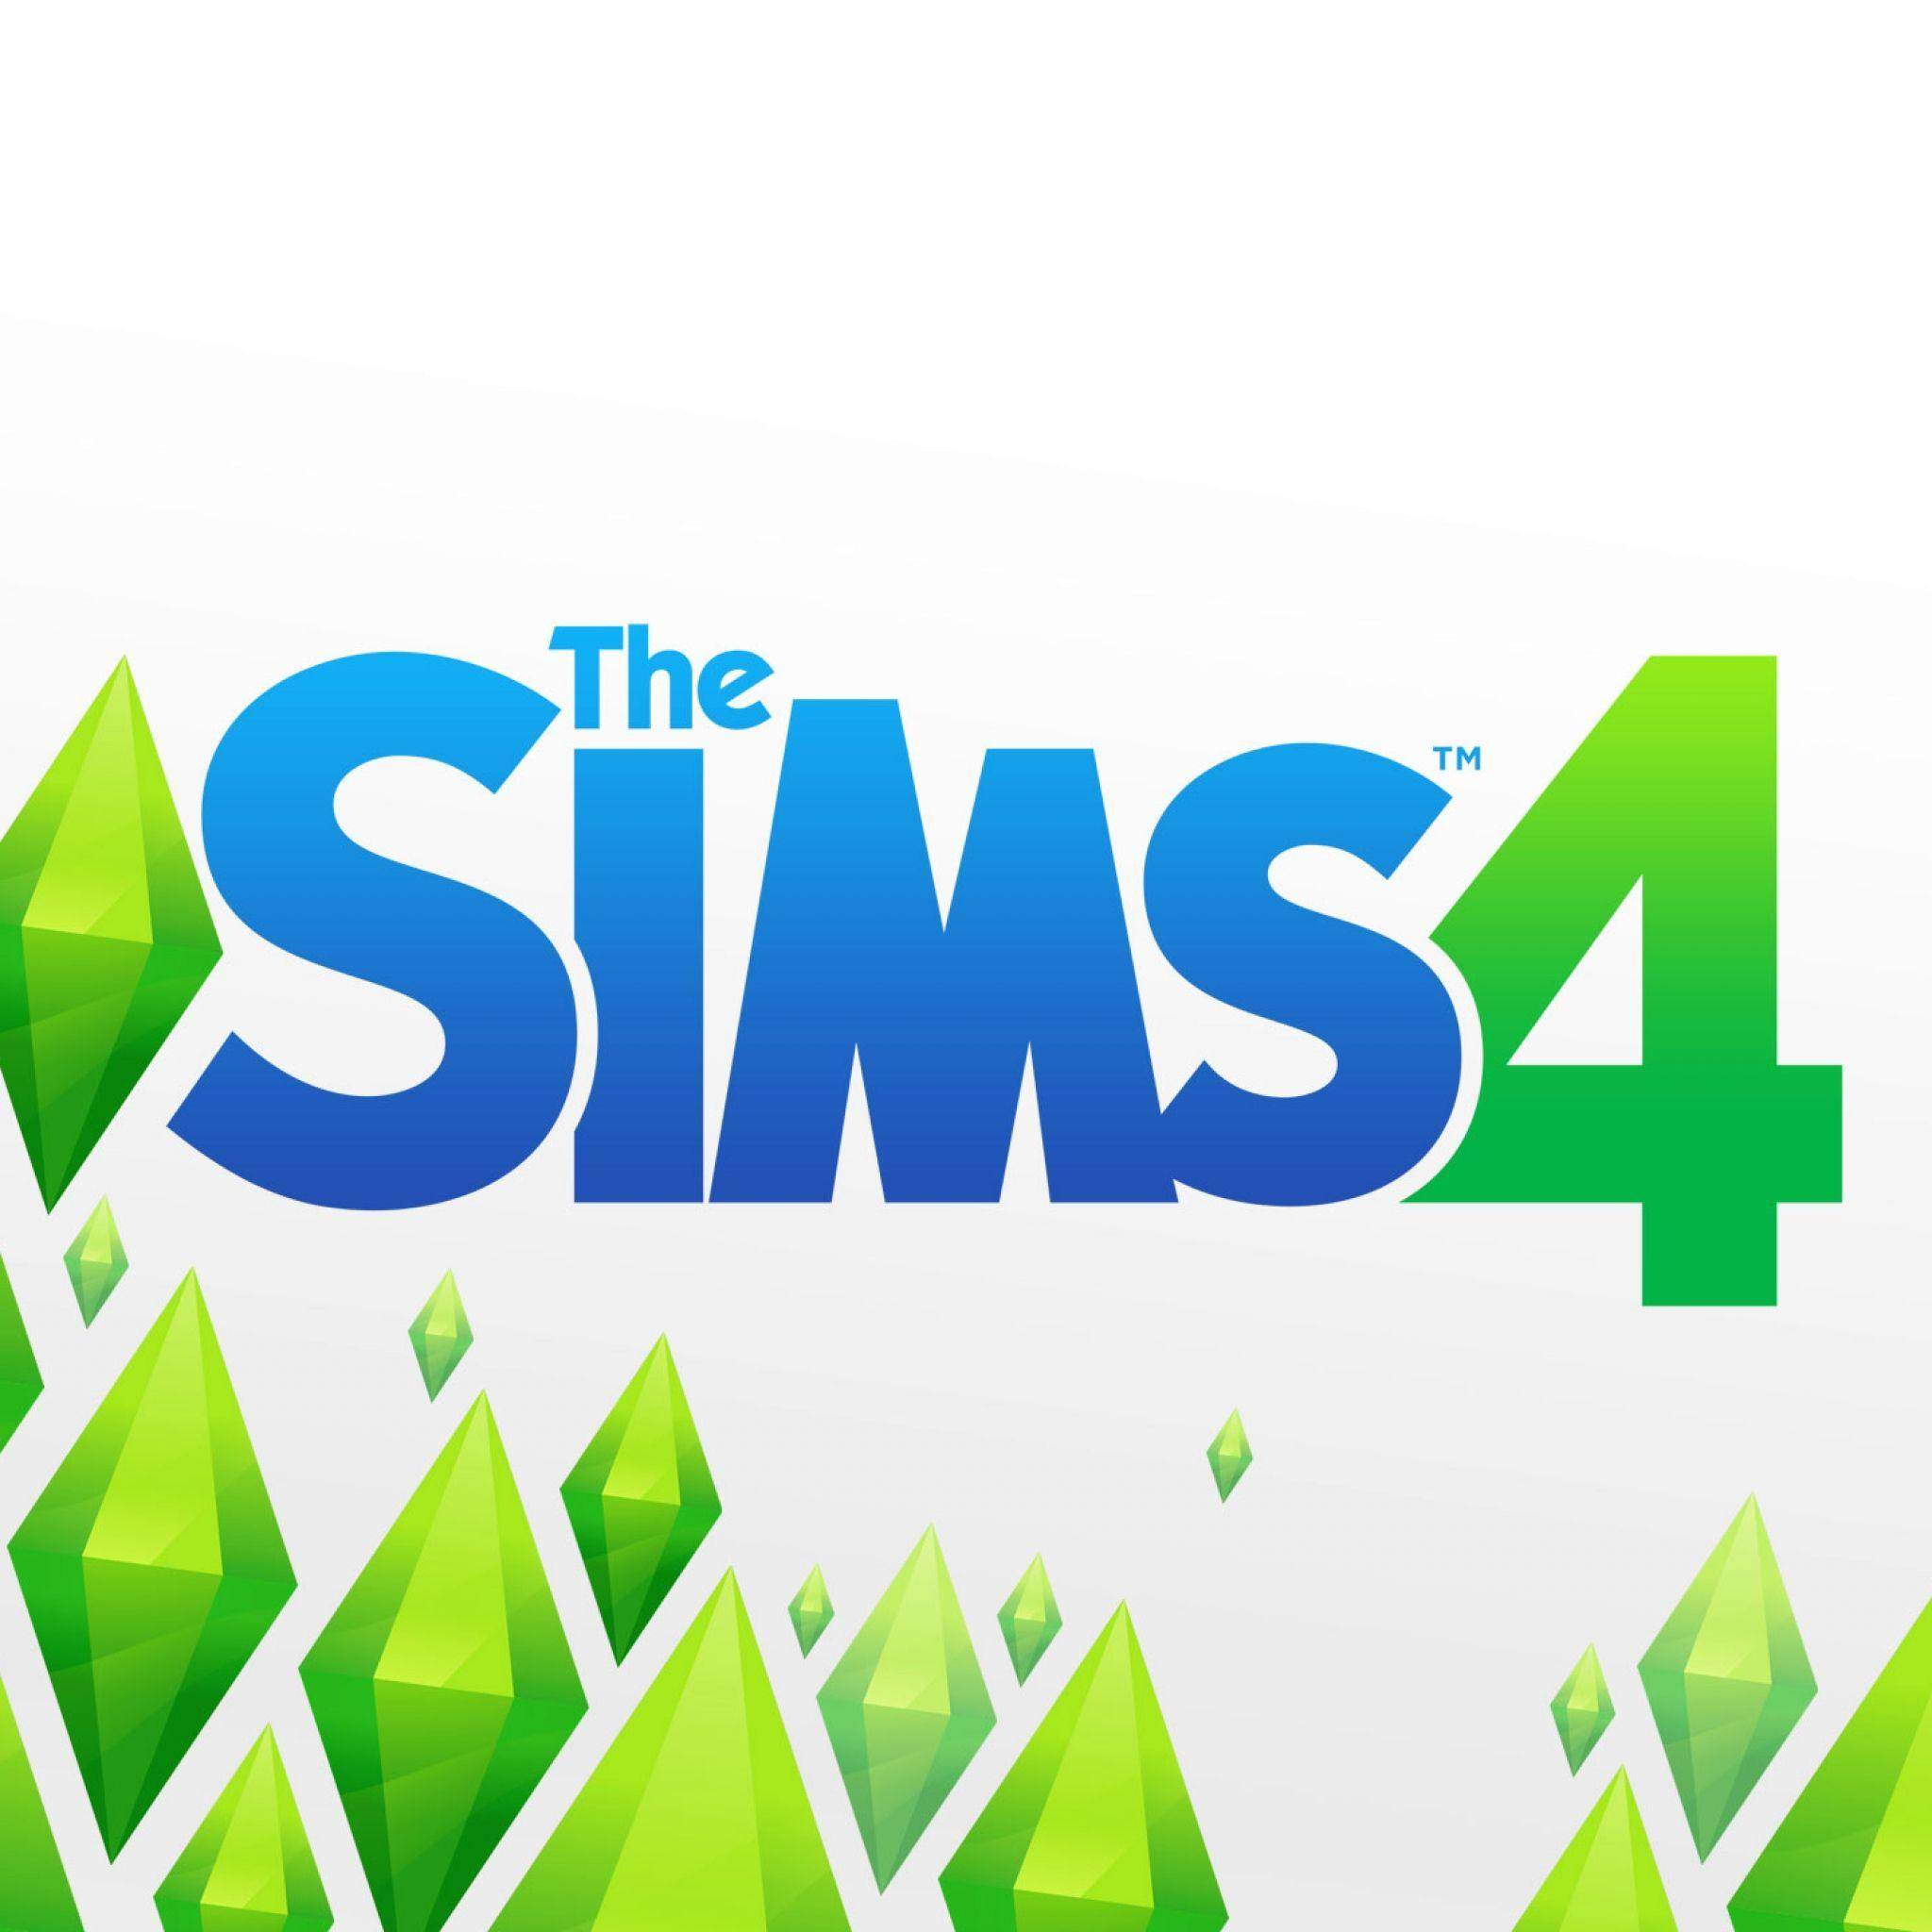 Download Wallpapers 2048x2048 The sims 4, Maxis software, 2014, PC